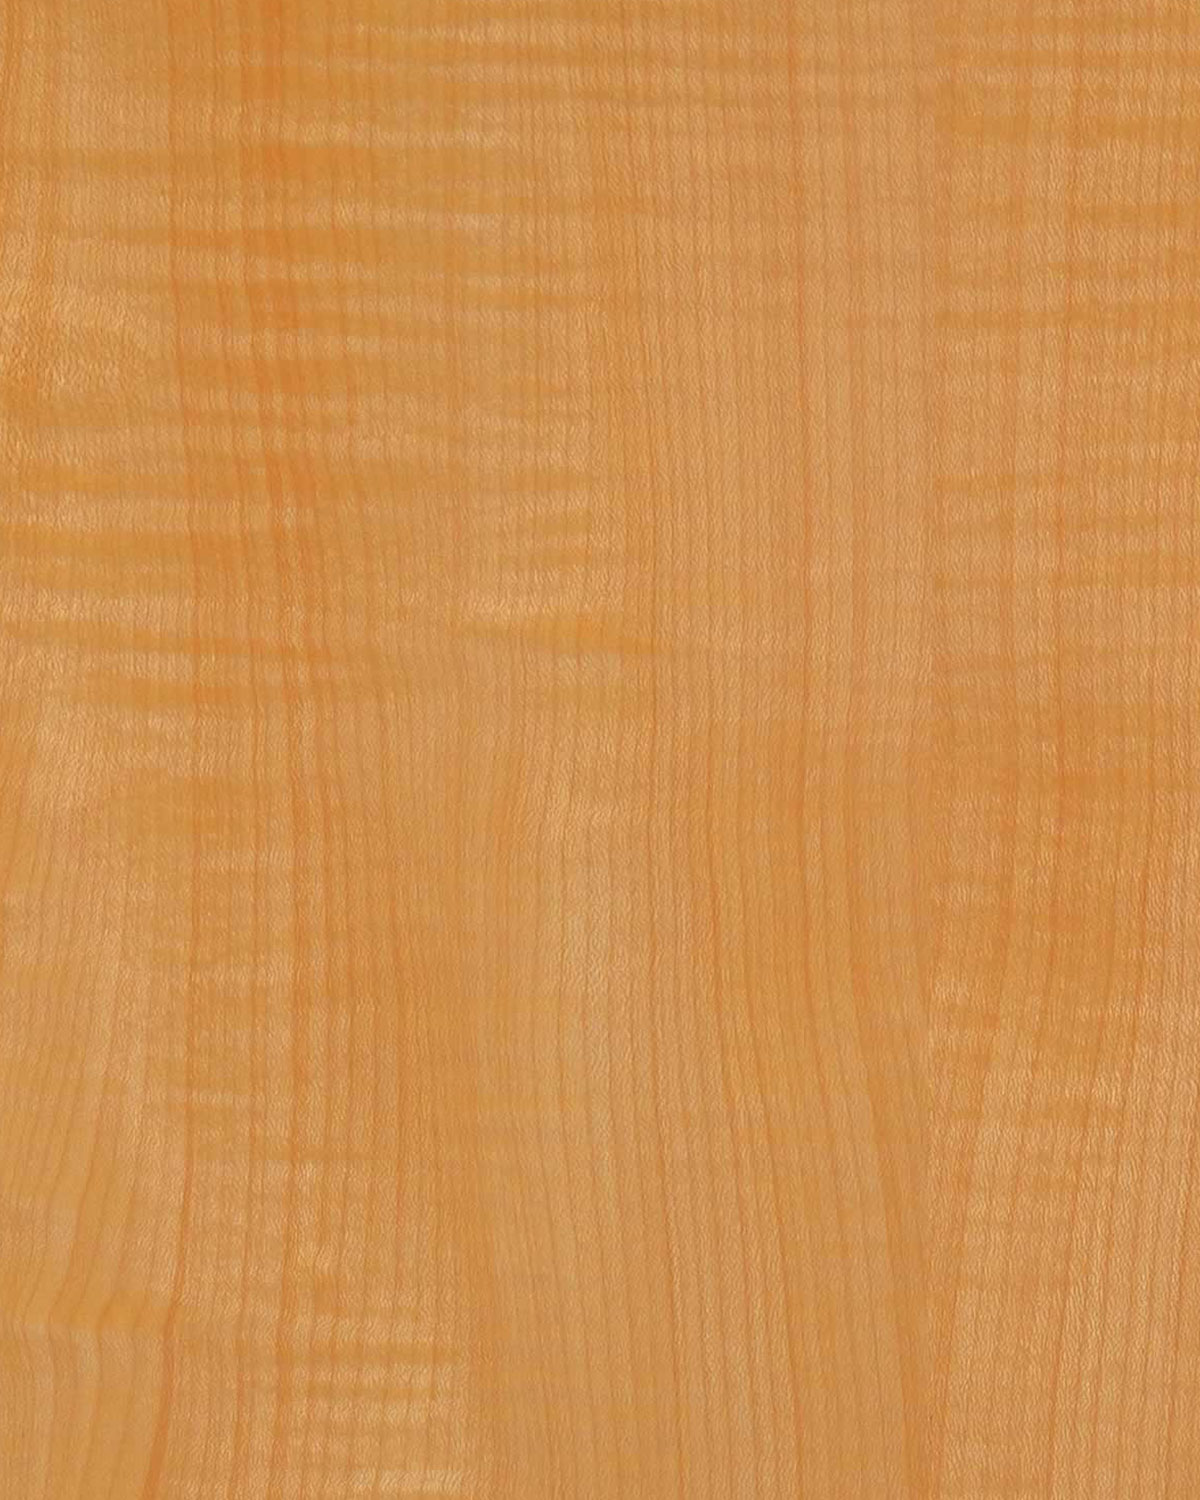 Sycamore, English Figured Quarter Cut